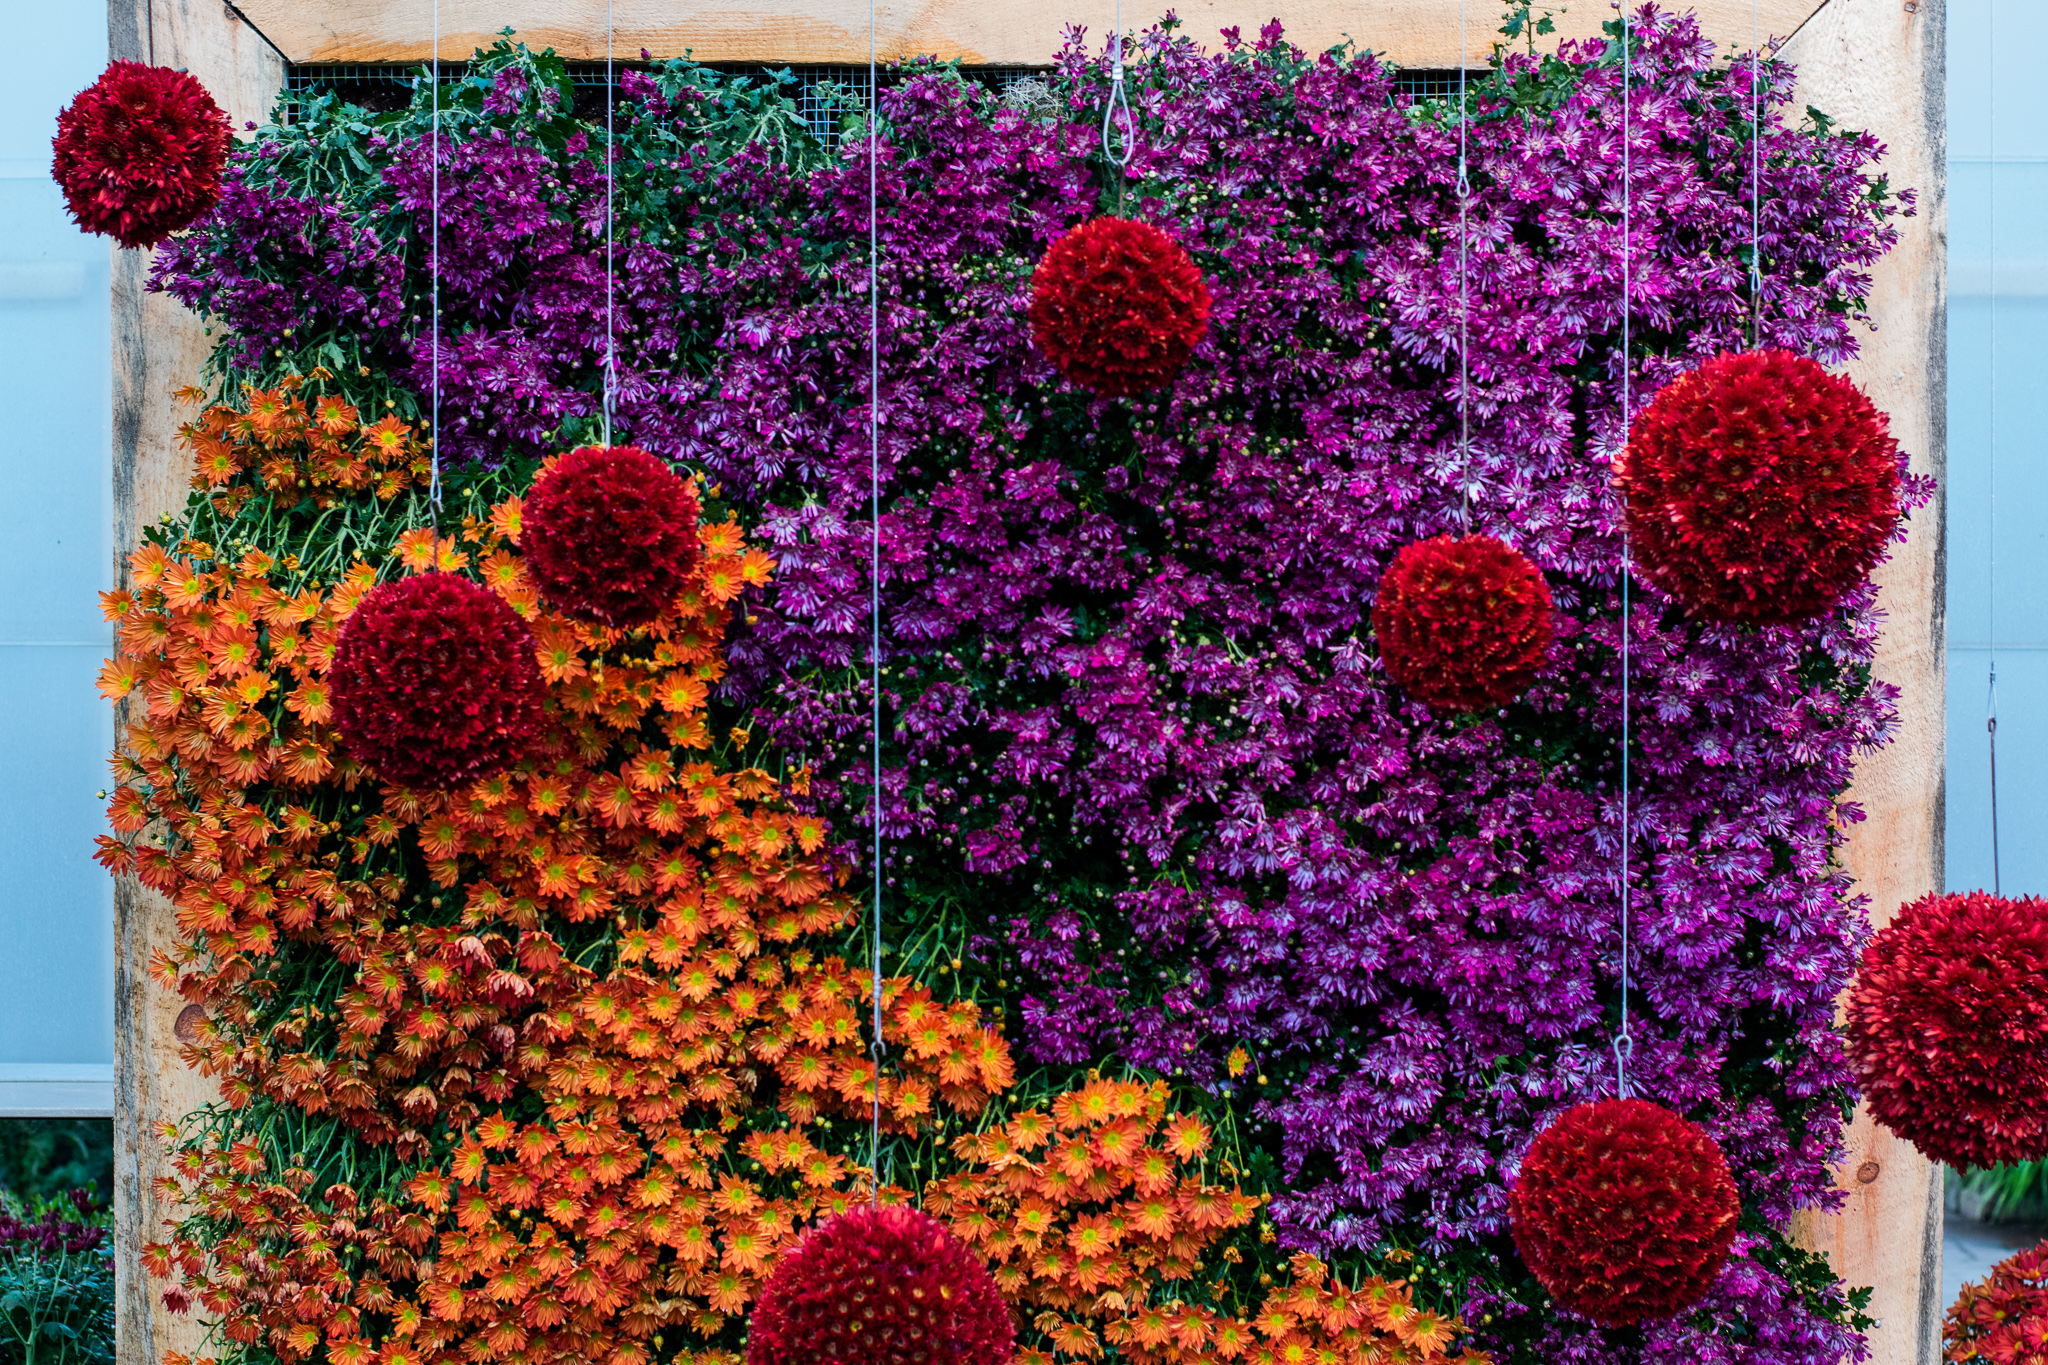 Frederik Meijer Gardens exhibit turns mums into works of art